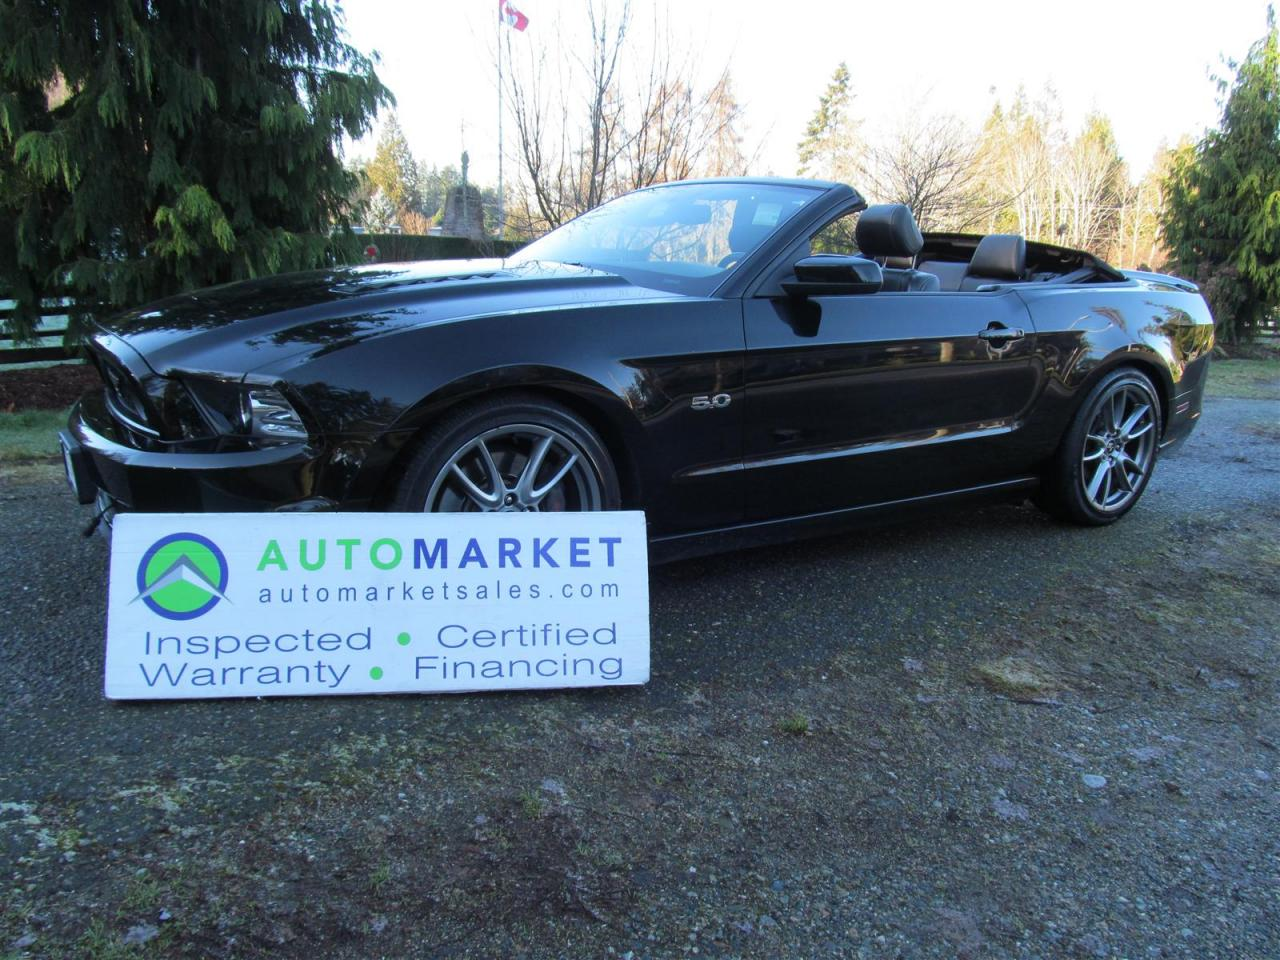 Used 2014 ford mustang gt cab insp free bcaa mbshp free warr finance for sale in surrey british columbia carpages ca